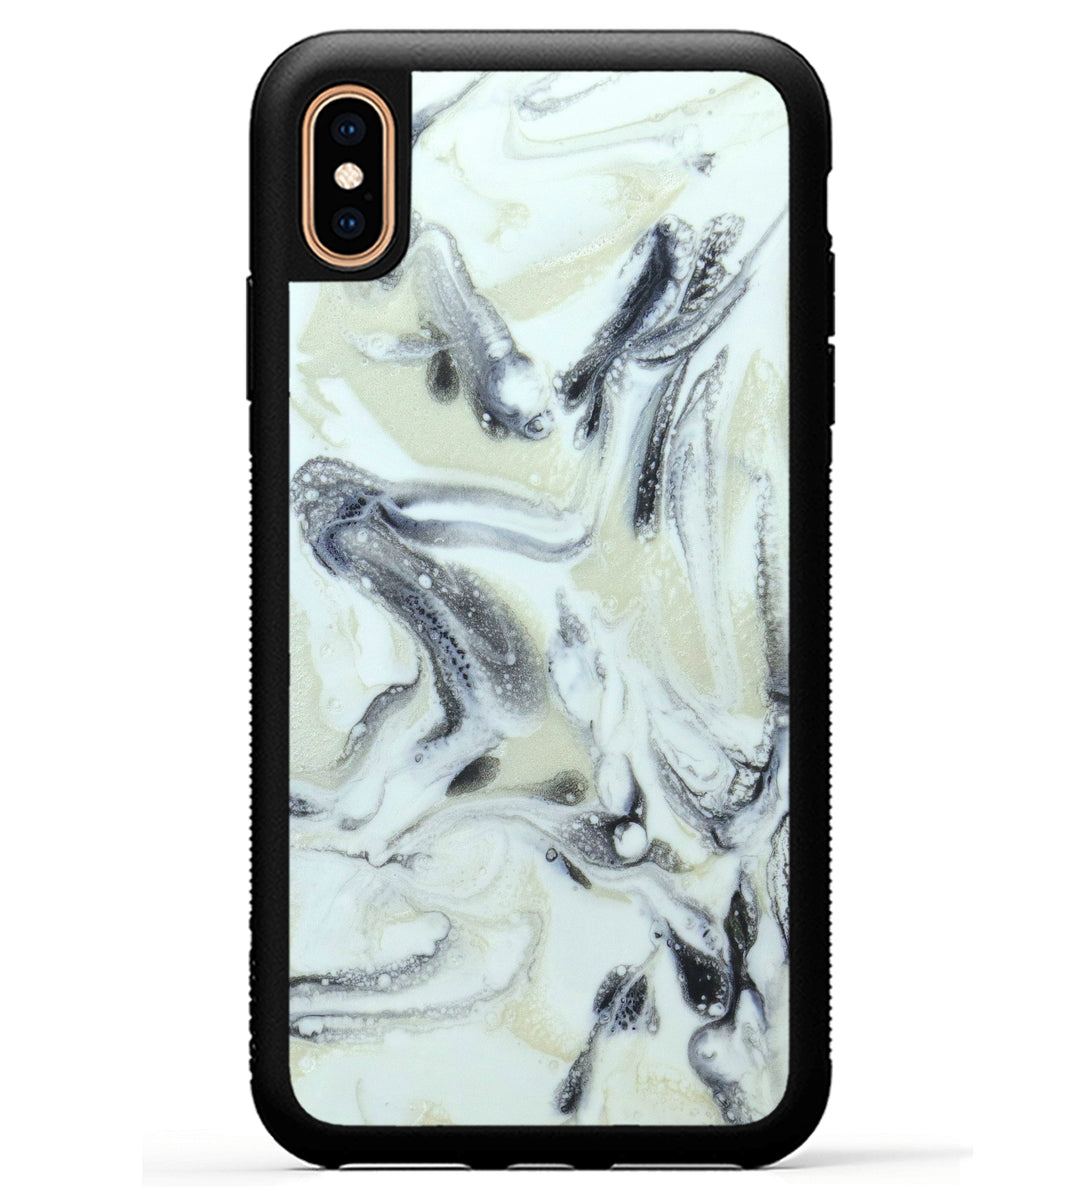 iPhone Xs Max Case - Lanni (Black & White, 345796)